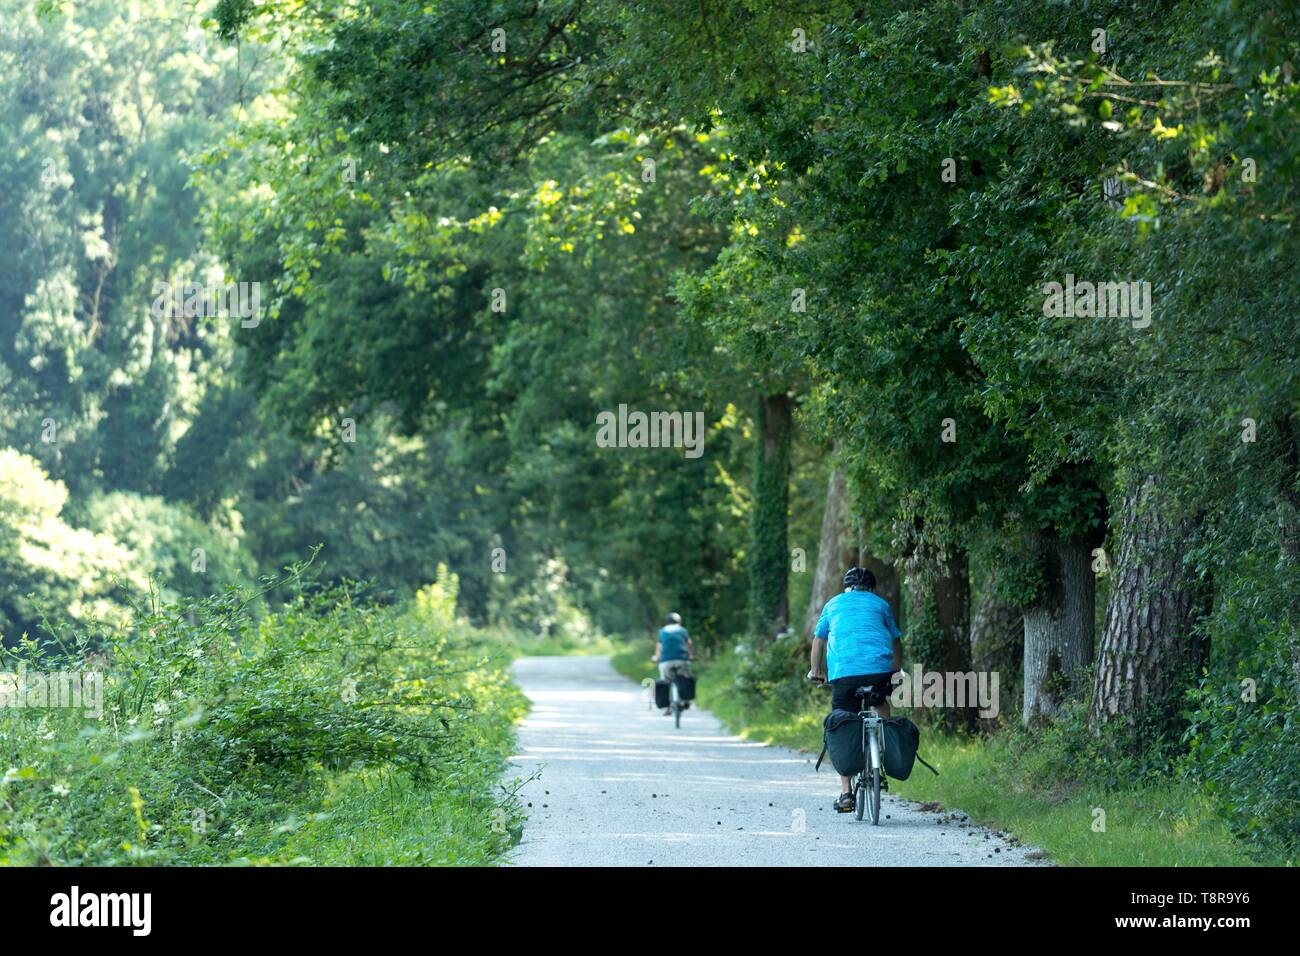 France, Morbihan, Pluméliau-Bieuzy, tcyclist on the towpath along the canal from Nantes to Brest near the village of Saint-Nicolas-des-eaux - Stock Image